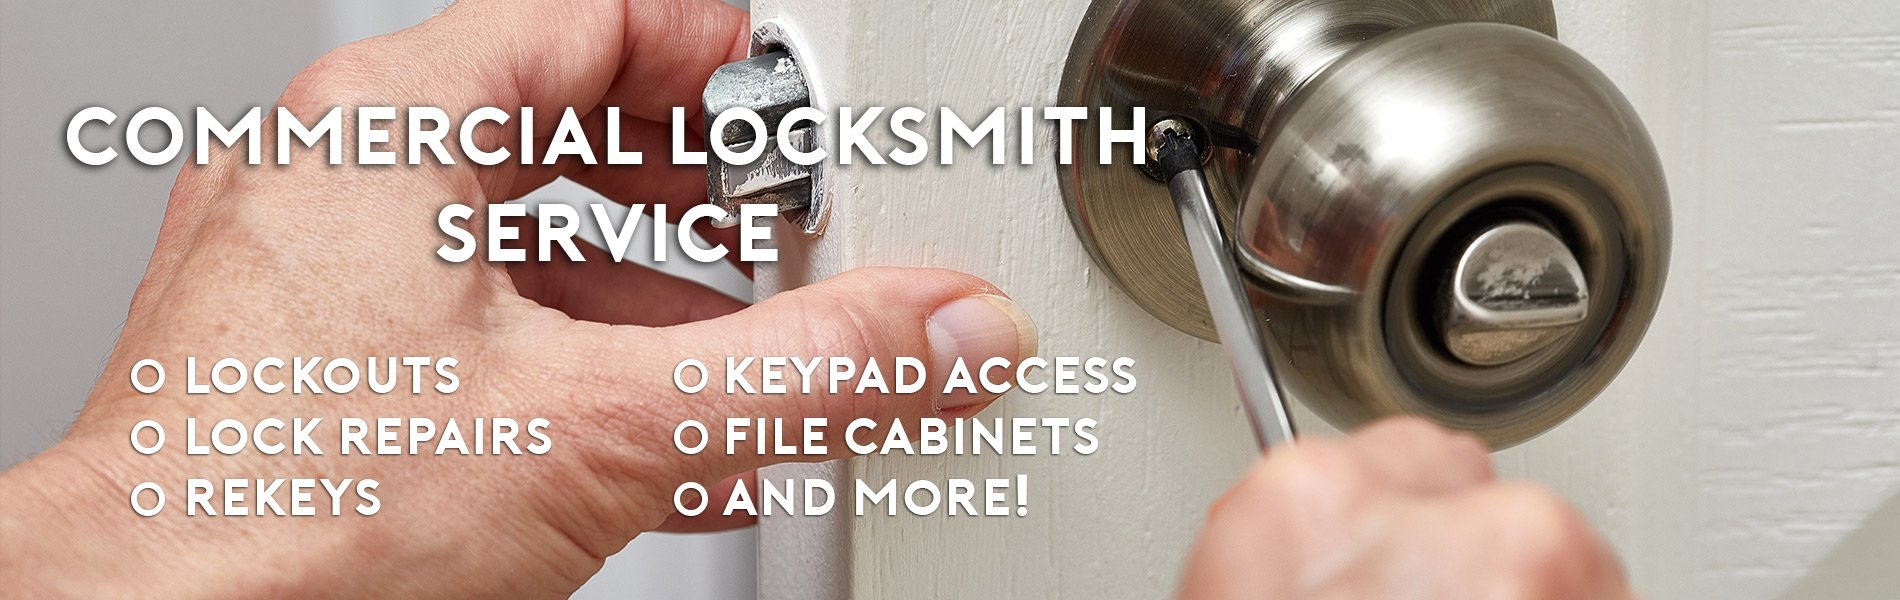 City Locksmith Shop Seattle, WA (866) 245-6554